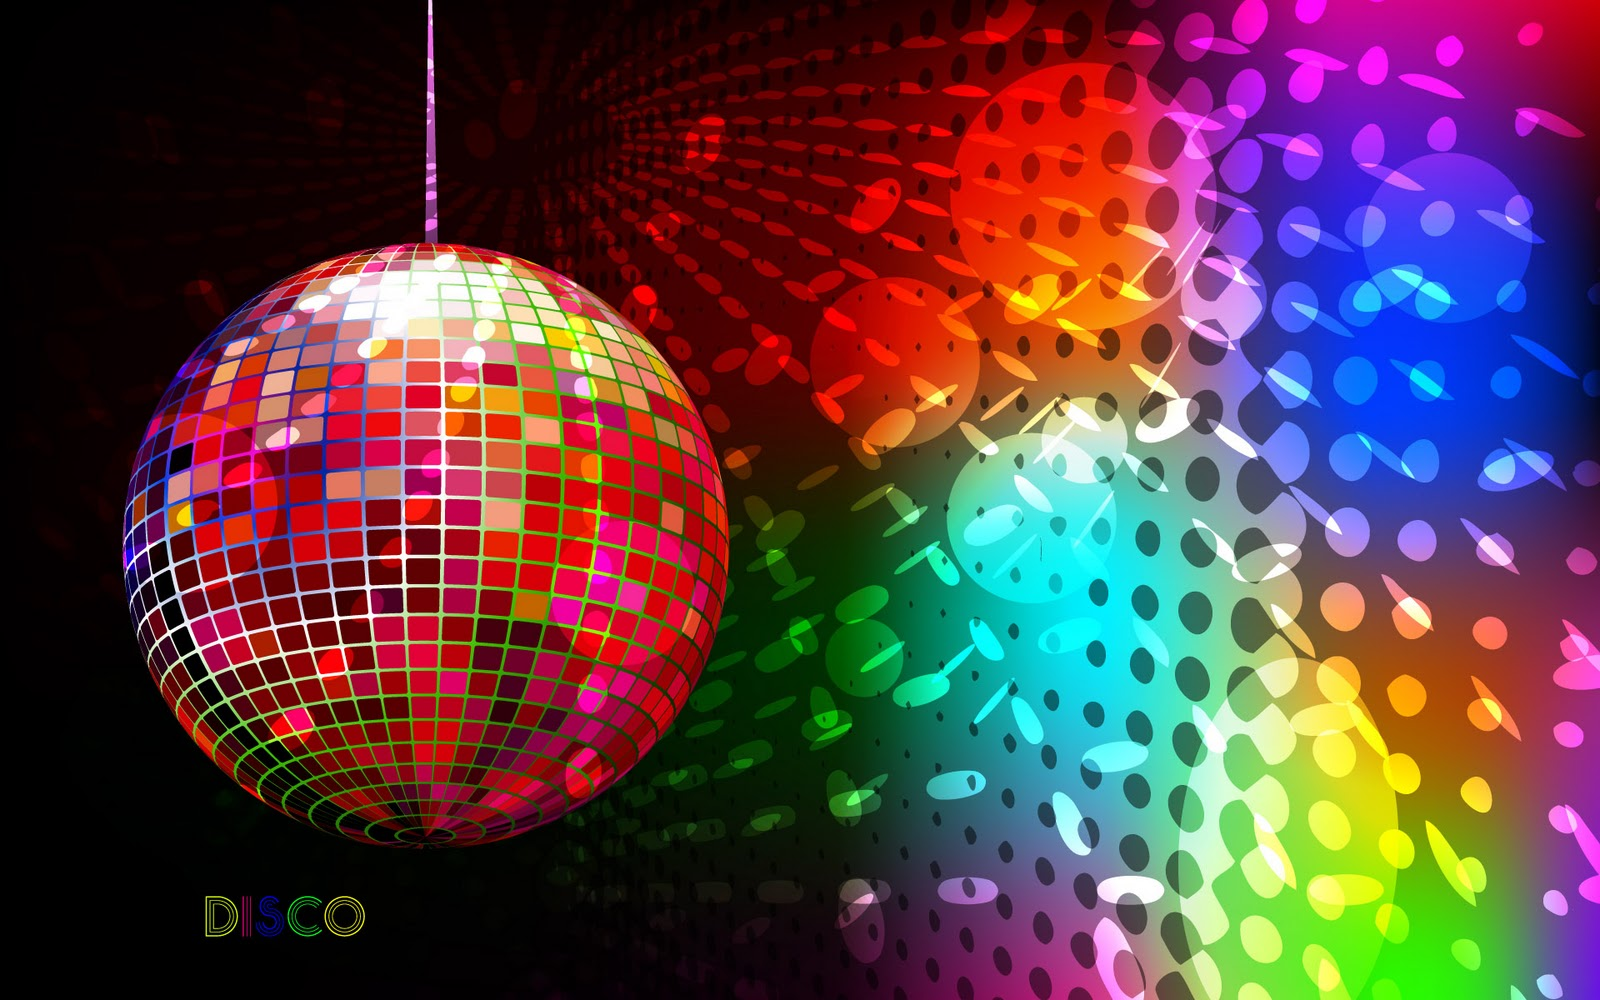 Pics photos tutorial background abstrak pelangi - Colorful Disco Abstract Graphic Wallpaper